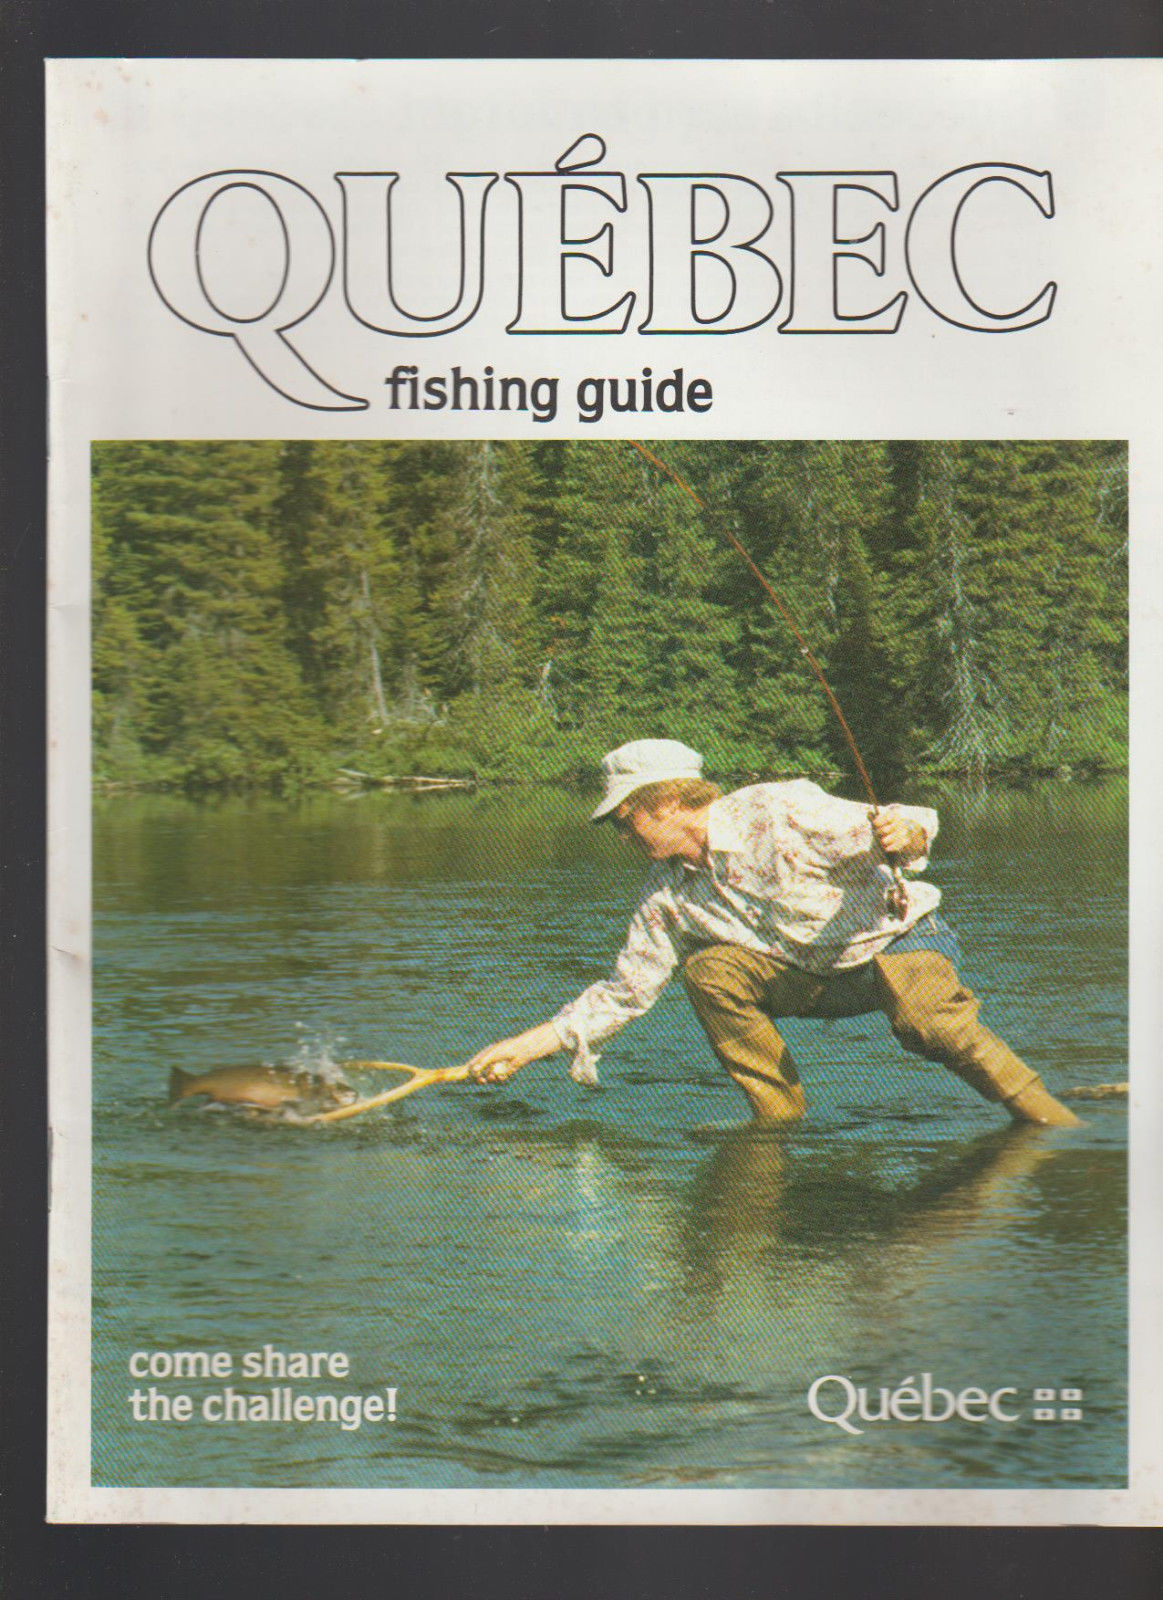 Quebec Fishing Guide 1984 Tourist Ministry and similar items